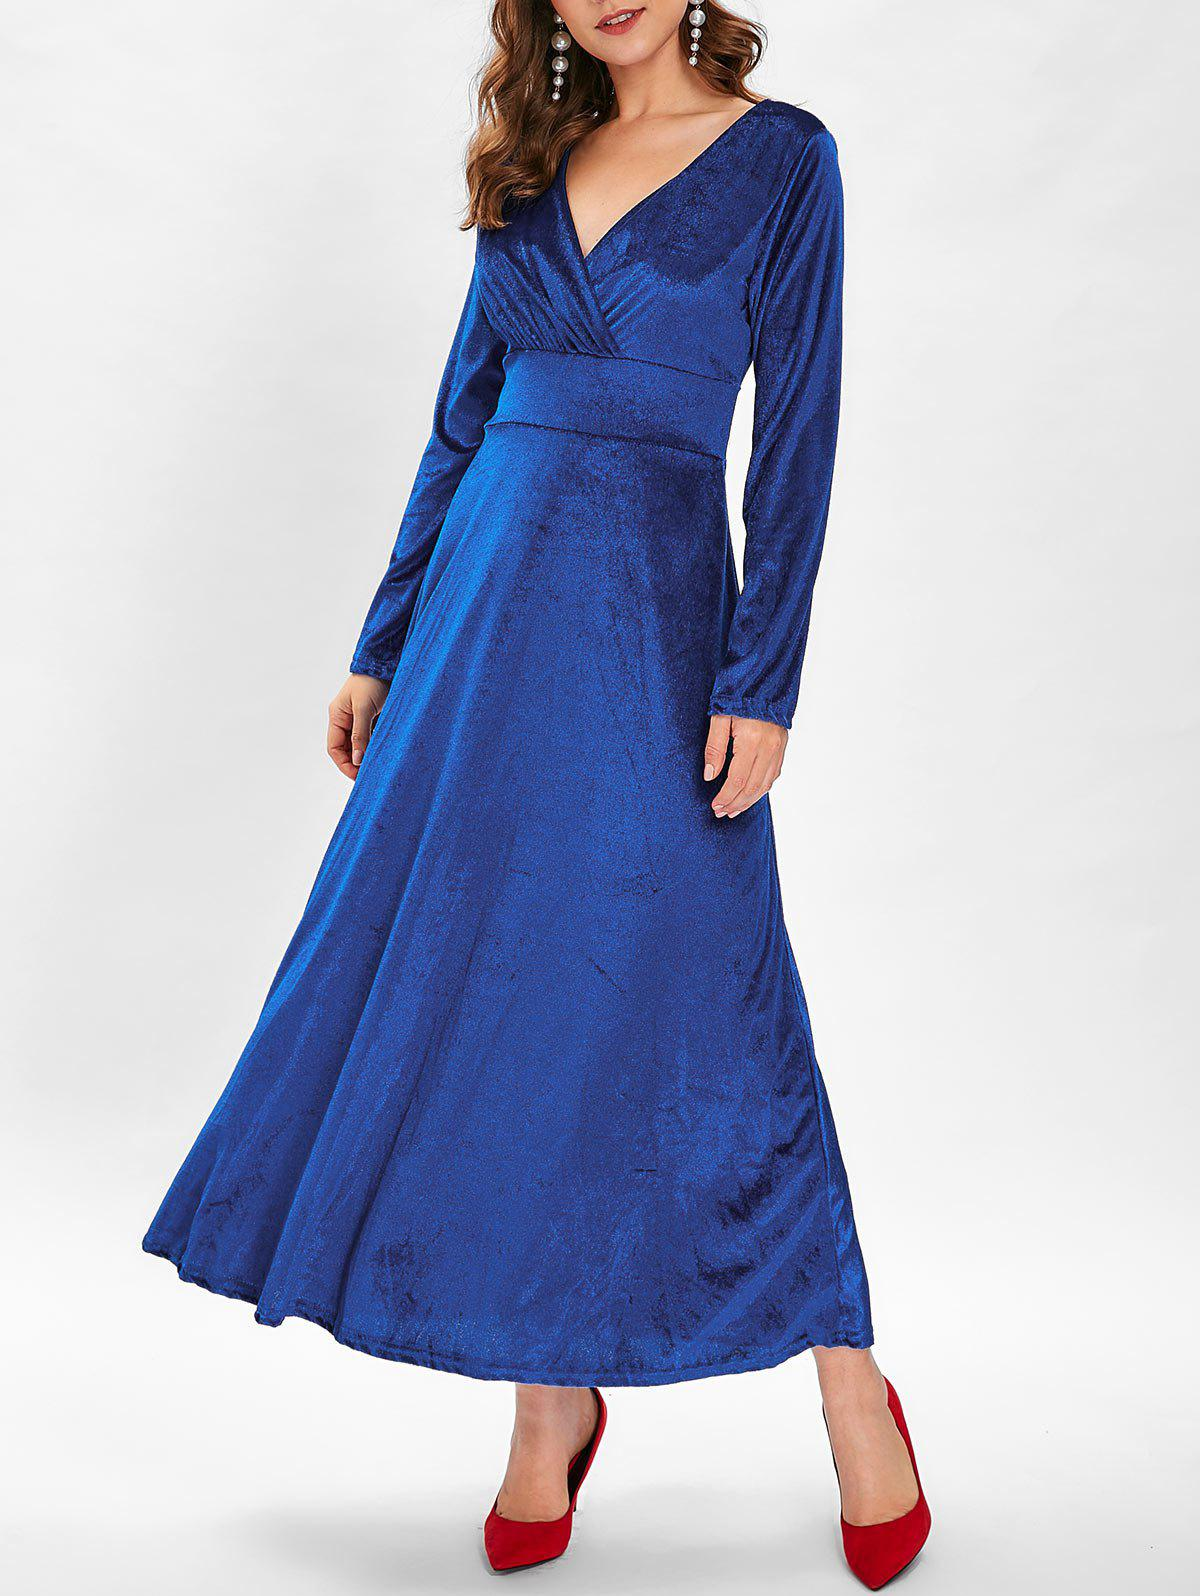 Chic Long Sleeve Velvet Maxi Party Dress